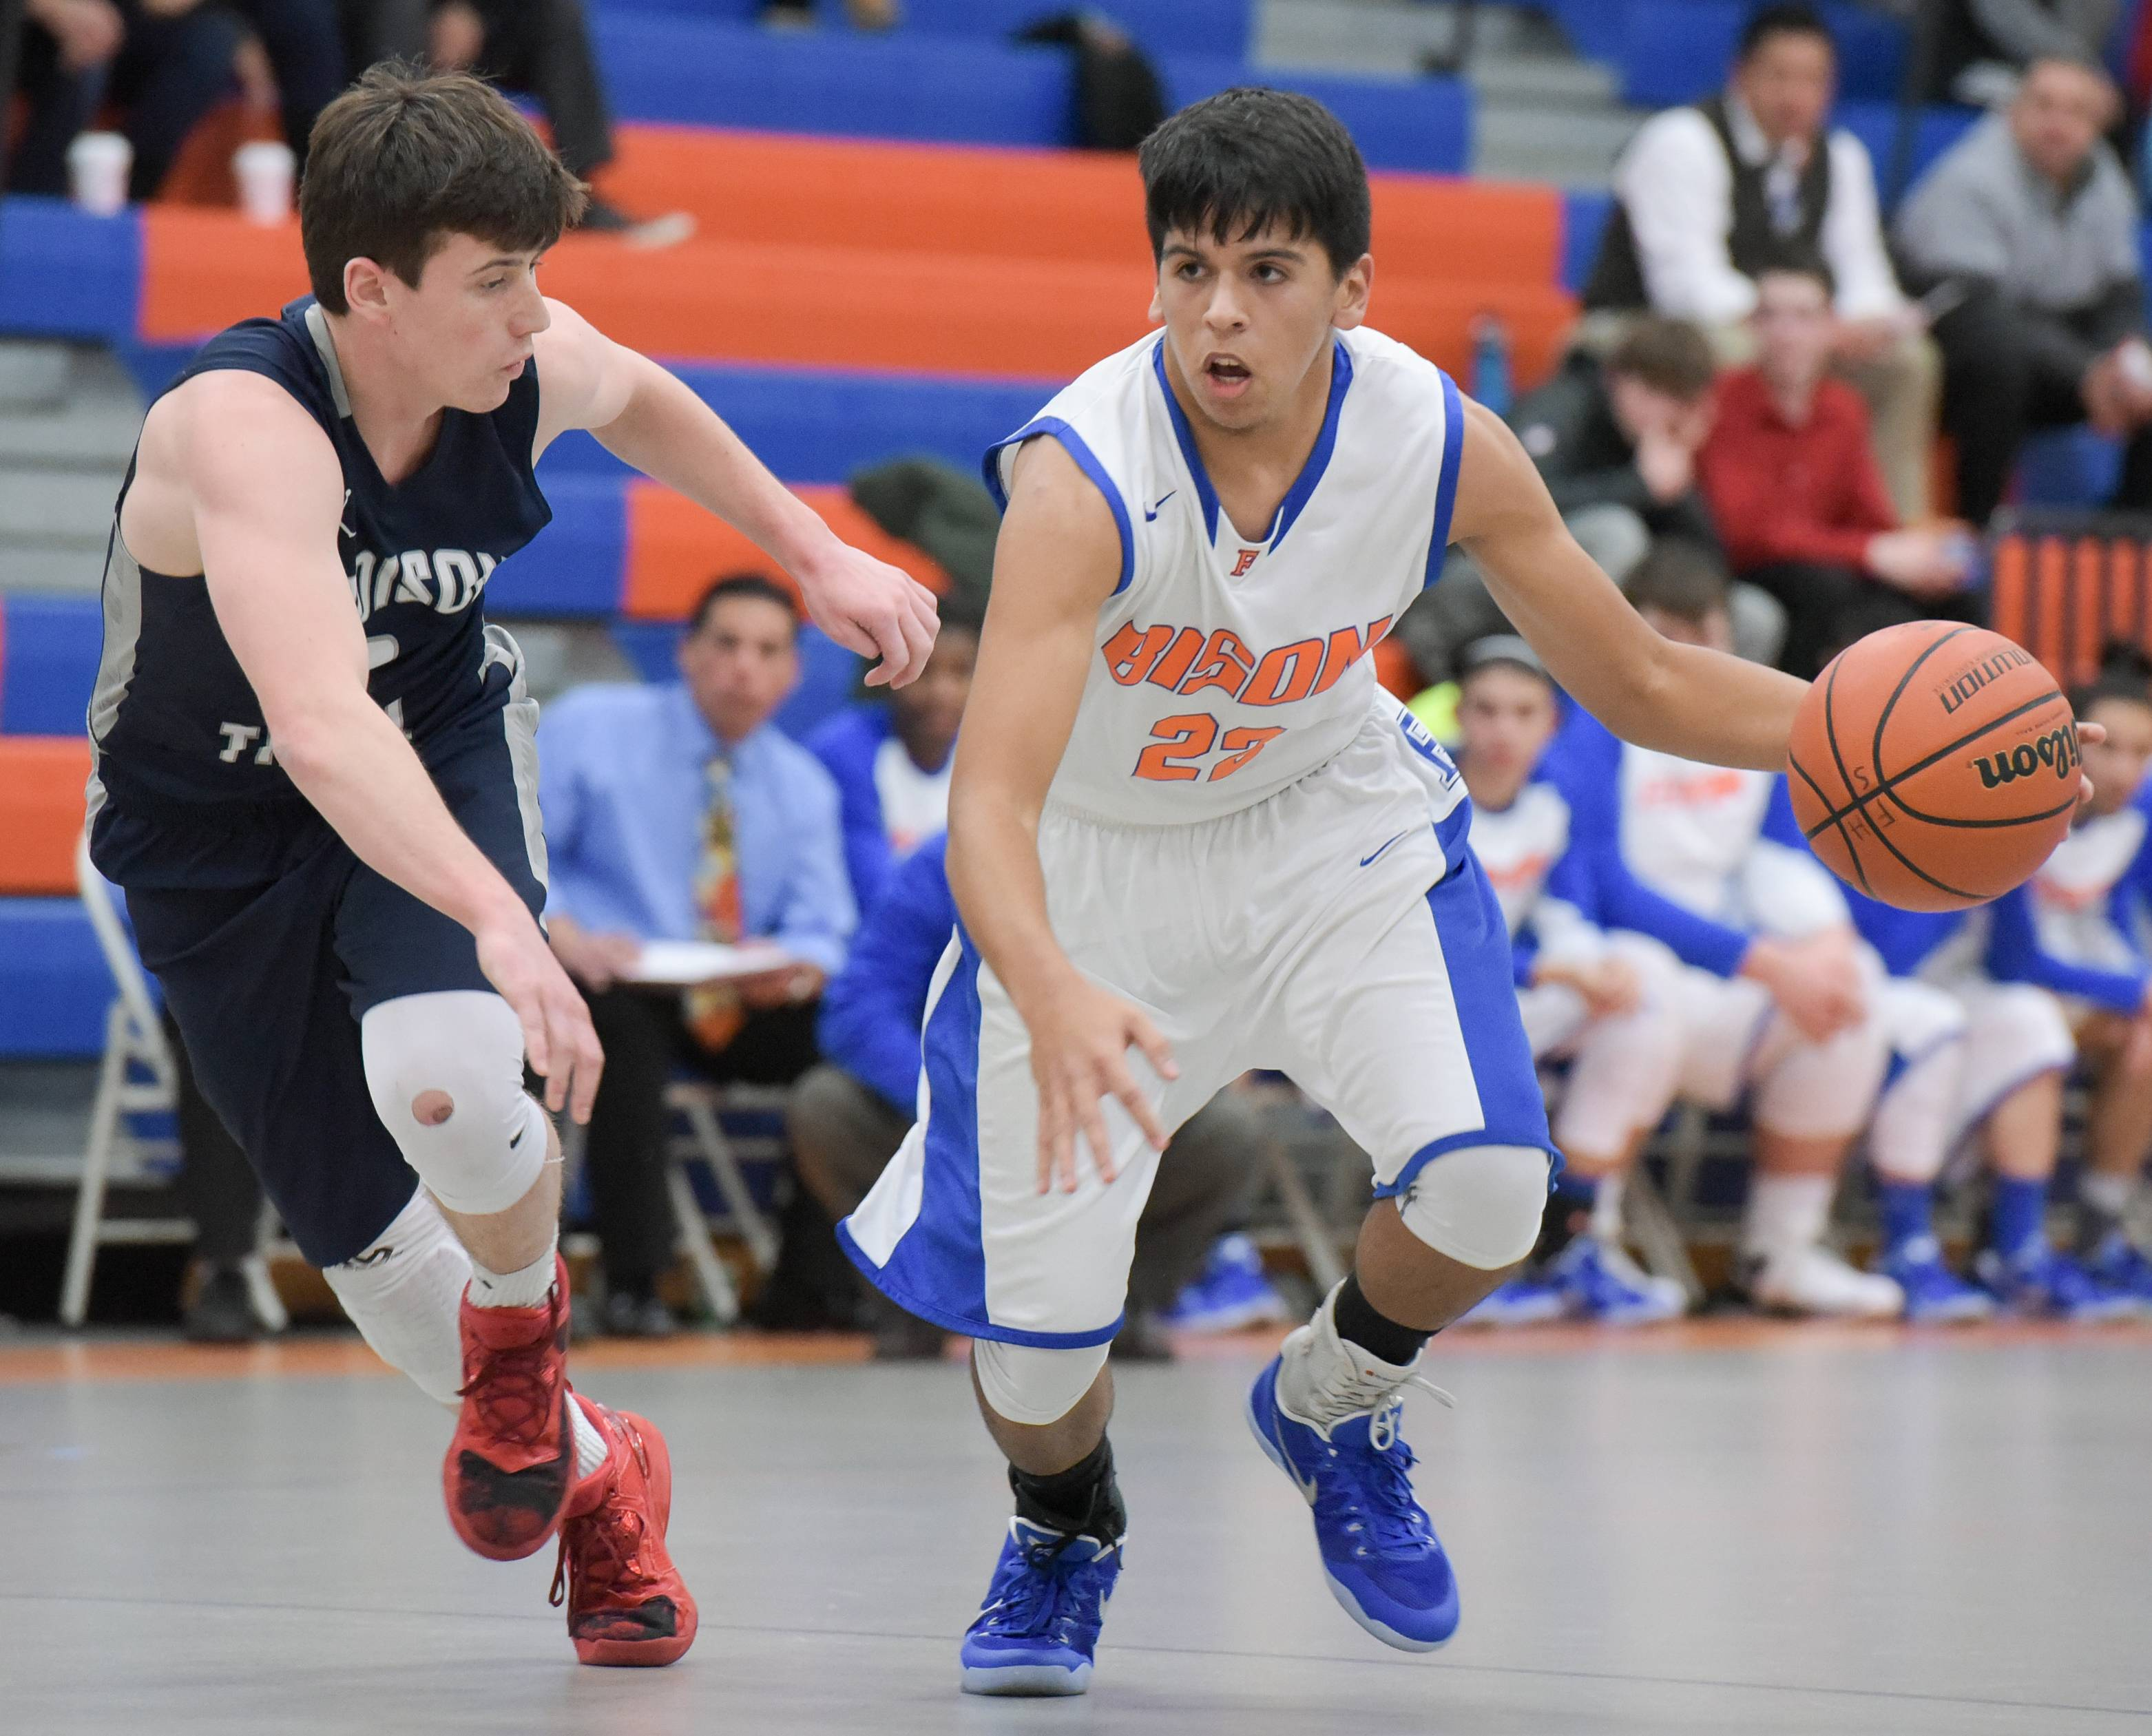 Addison Trail's Jack Kalbas keeps pace with Fenton's Javier Sanchez during varsity boys basketball in Bensenville.